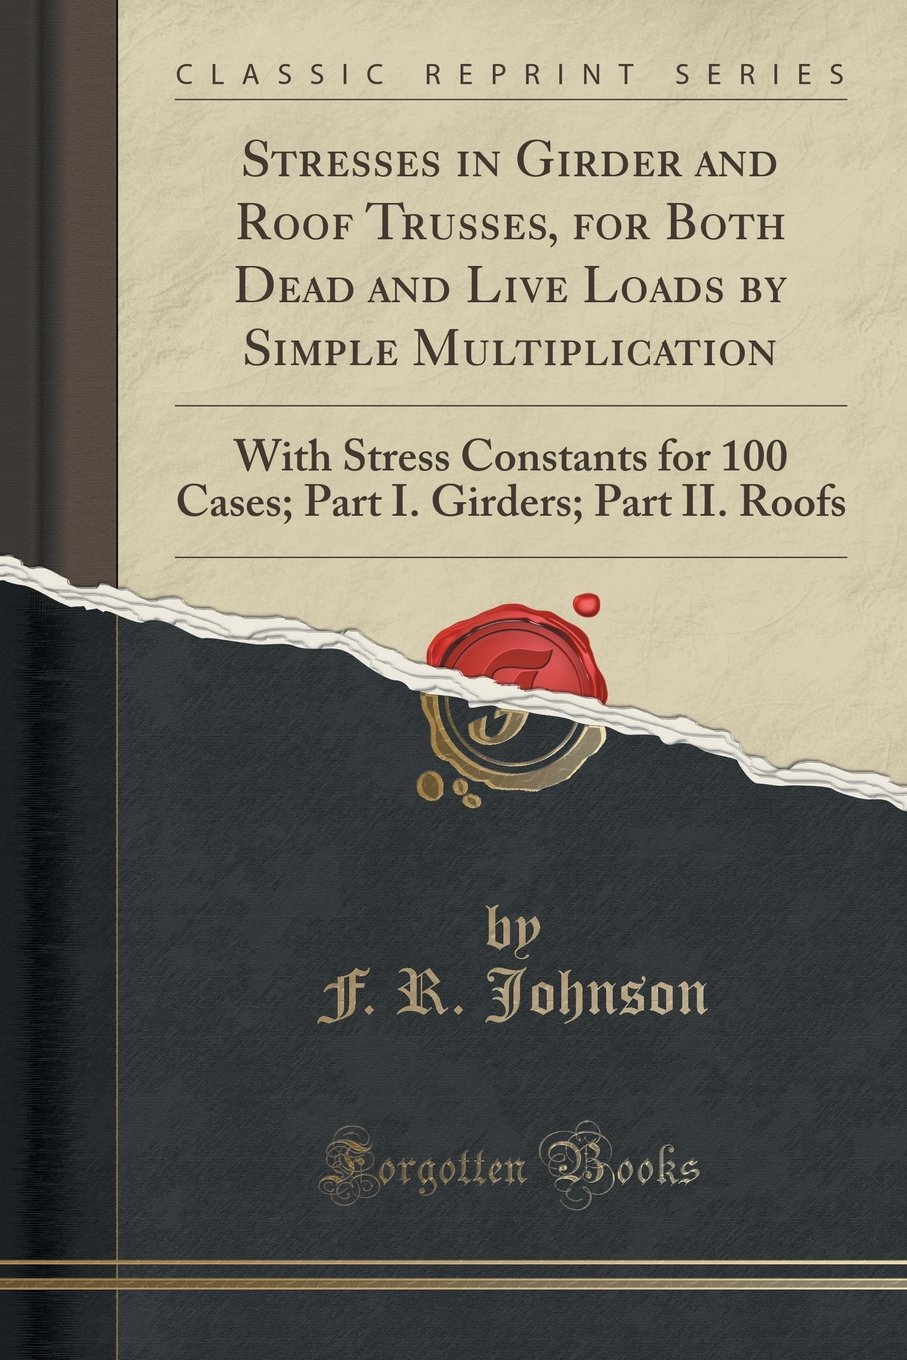 Download Stresses in Girder and Roof Trusses, for Both Dead and Live Loads by Simple Multiplication: With Stress Constants for 100 Cases; Part I. Girders; Part II. Roofs (Classic Reprint) pdf